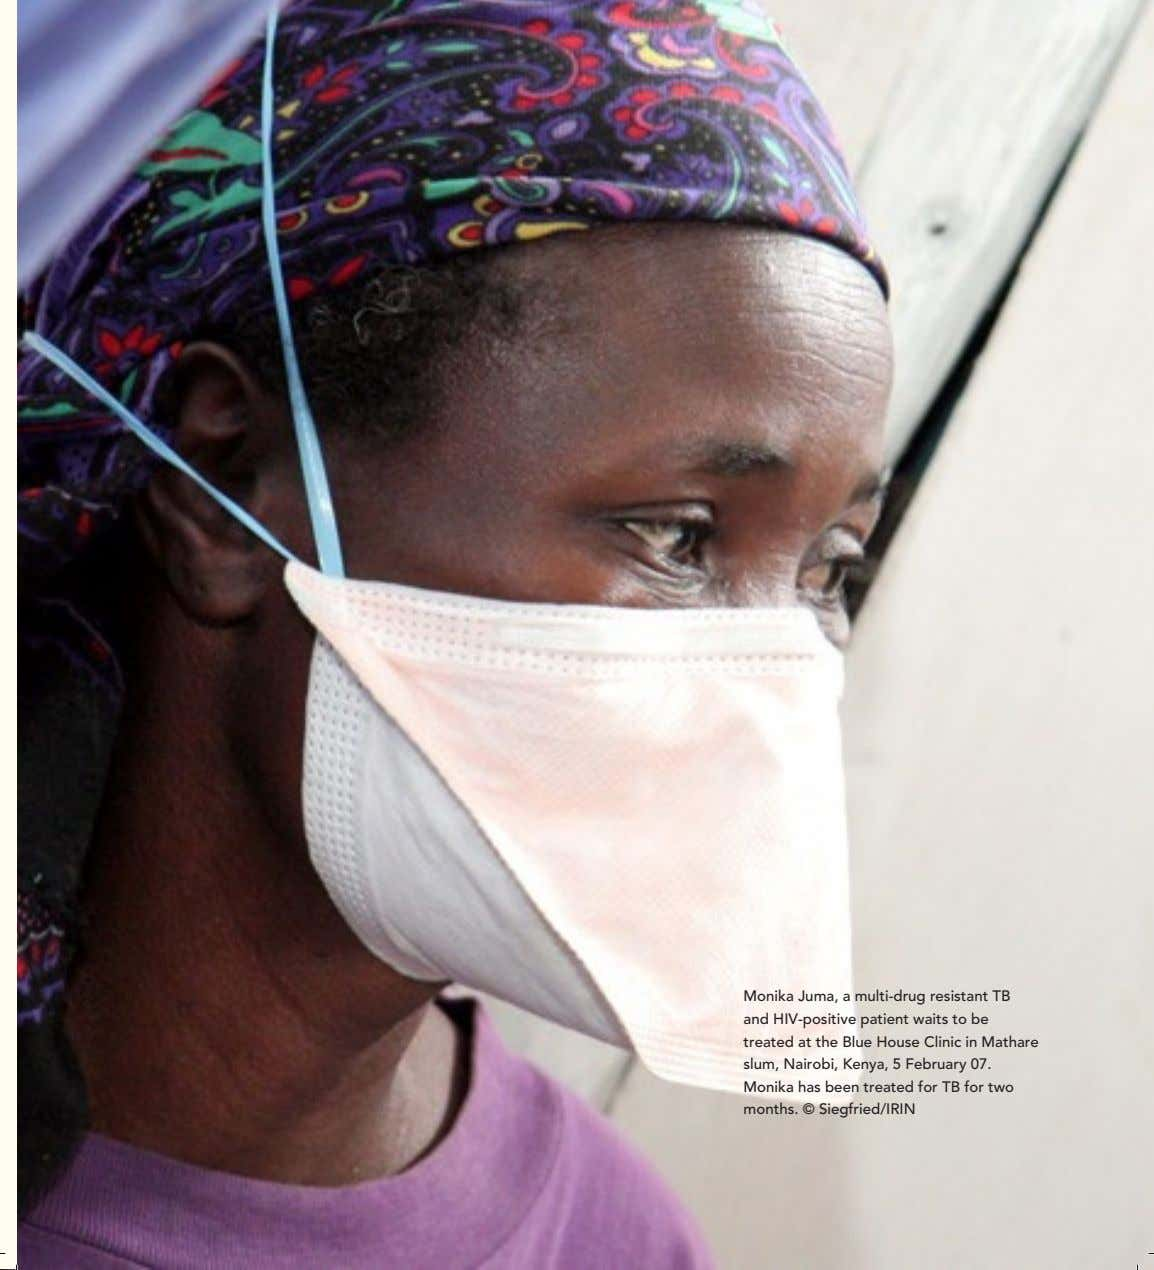 Clinic in Mathare slum, Nairobi, Kenya, 5 February 07. Monika has been treated for TB for